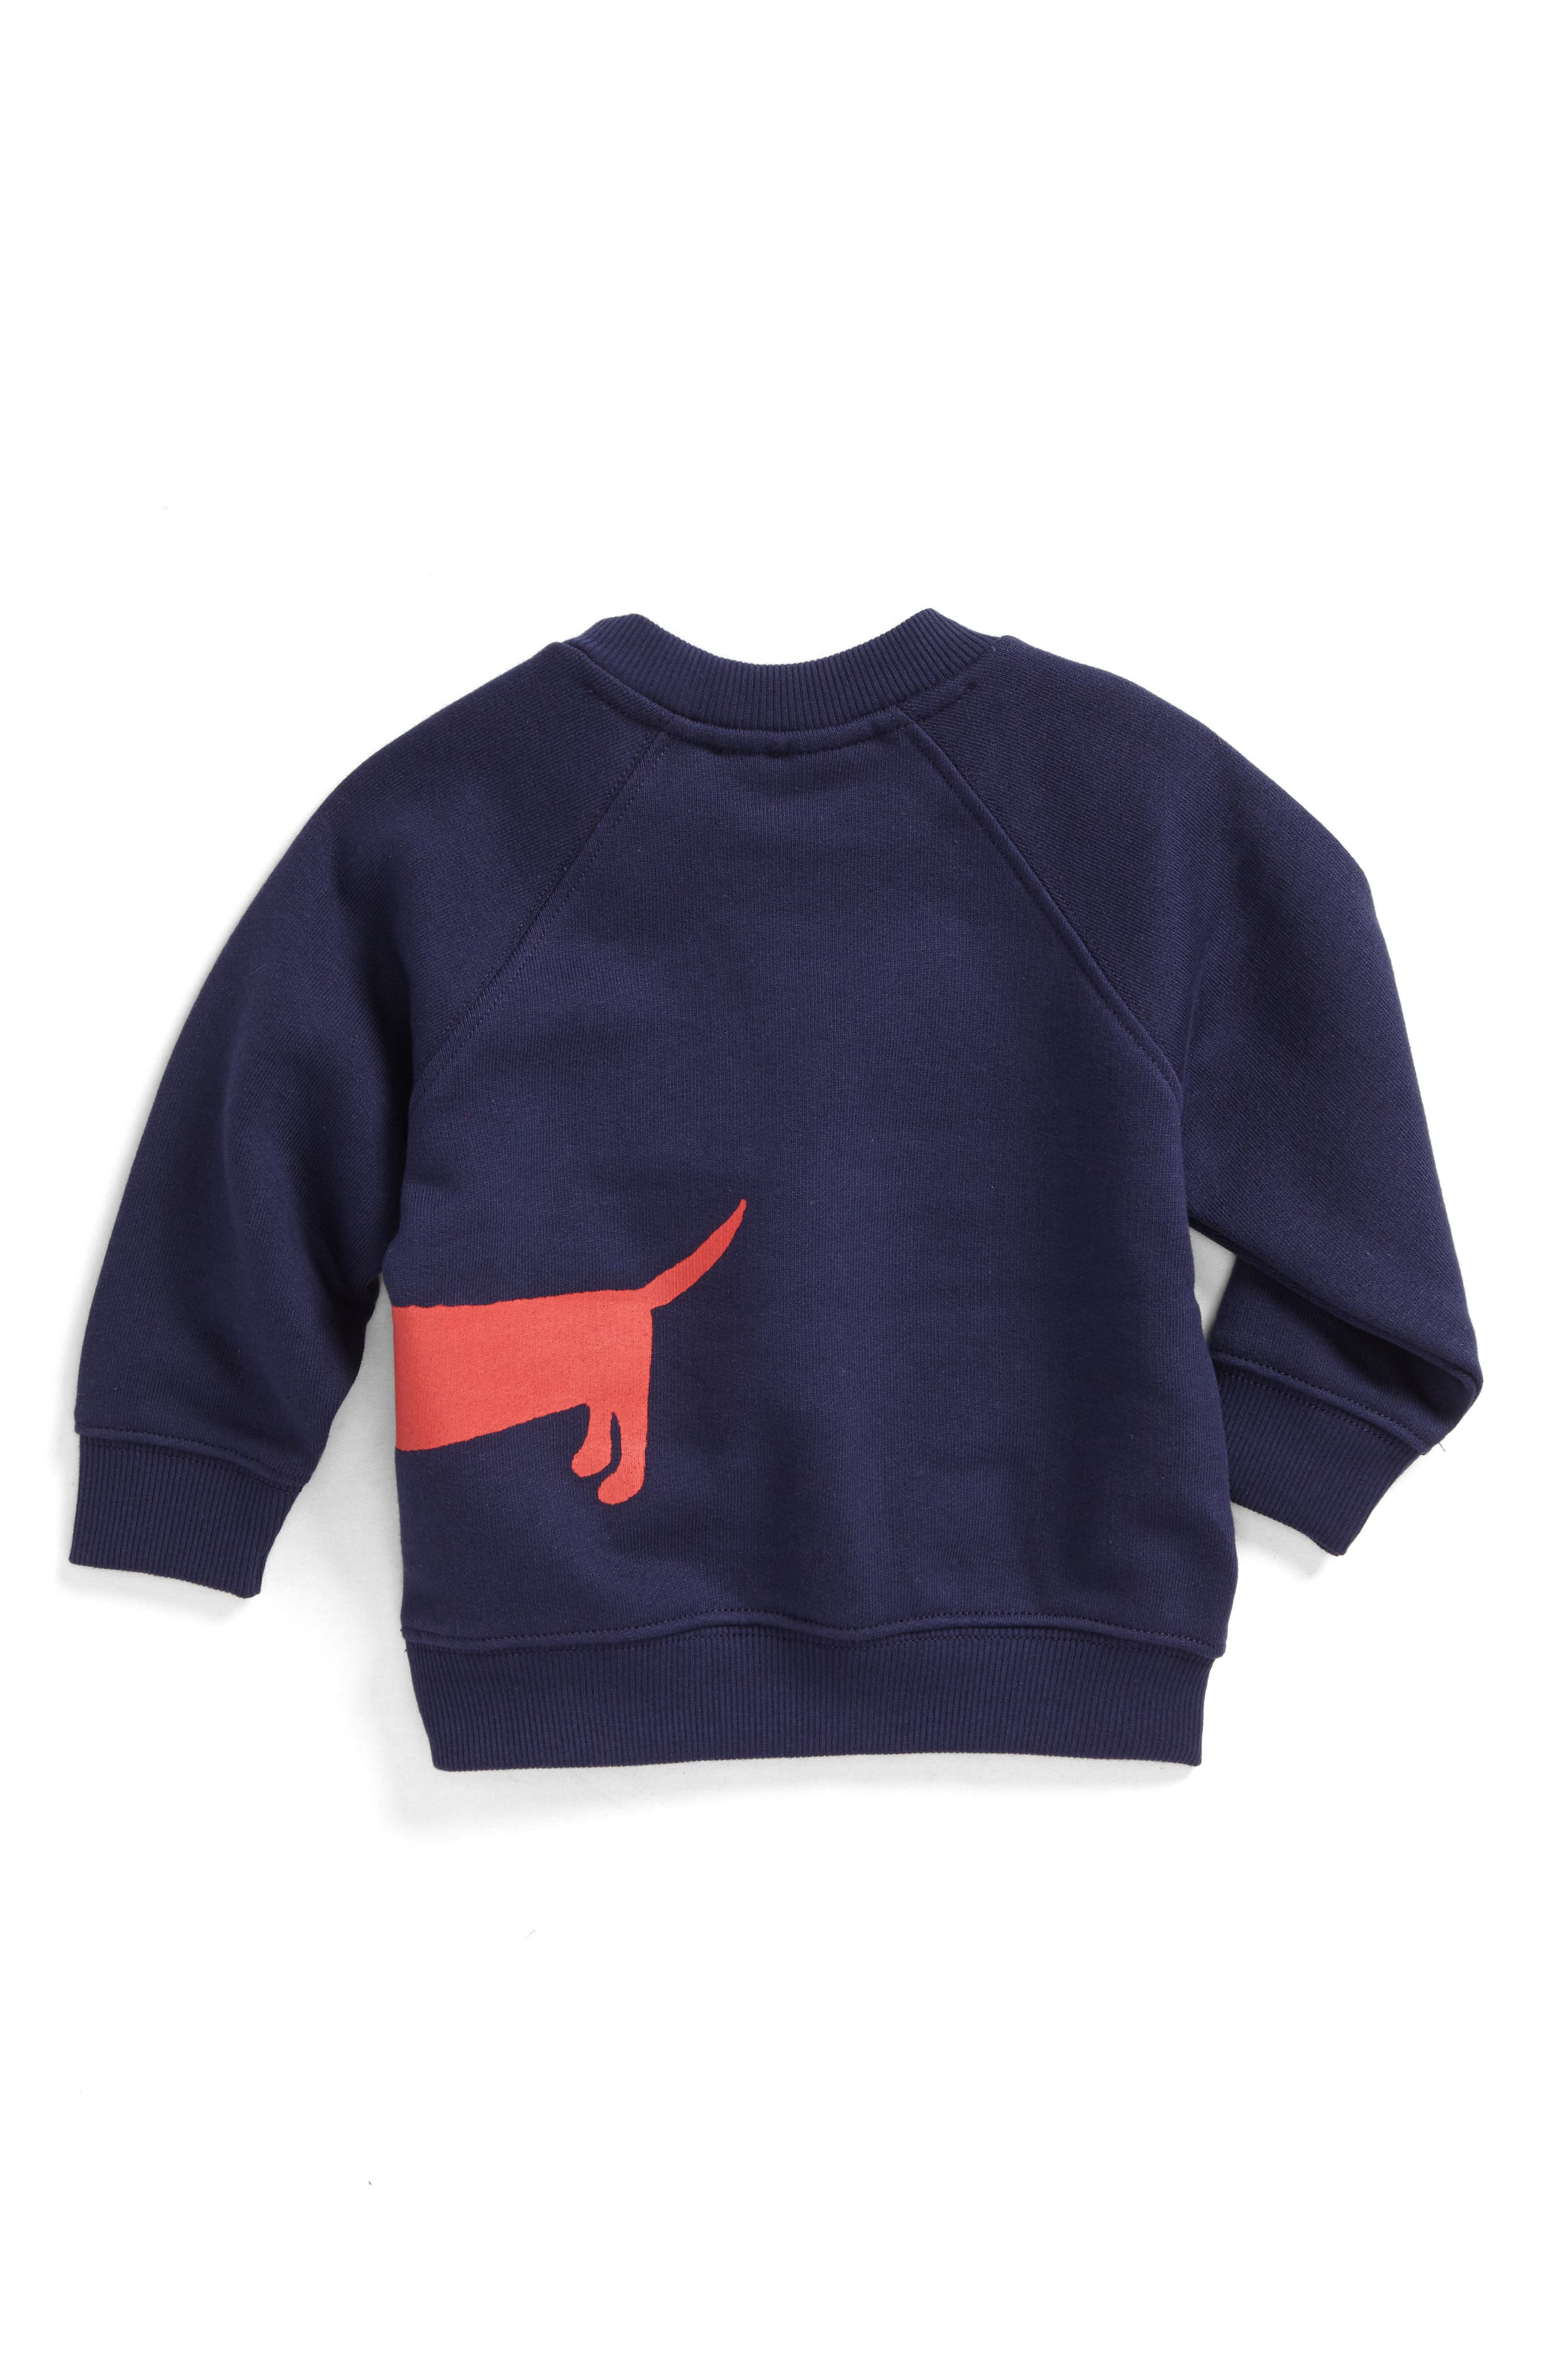 Dog Sweatshirt,                             Alternate thumbnail 2, color,                             410